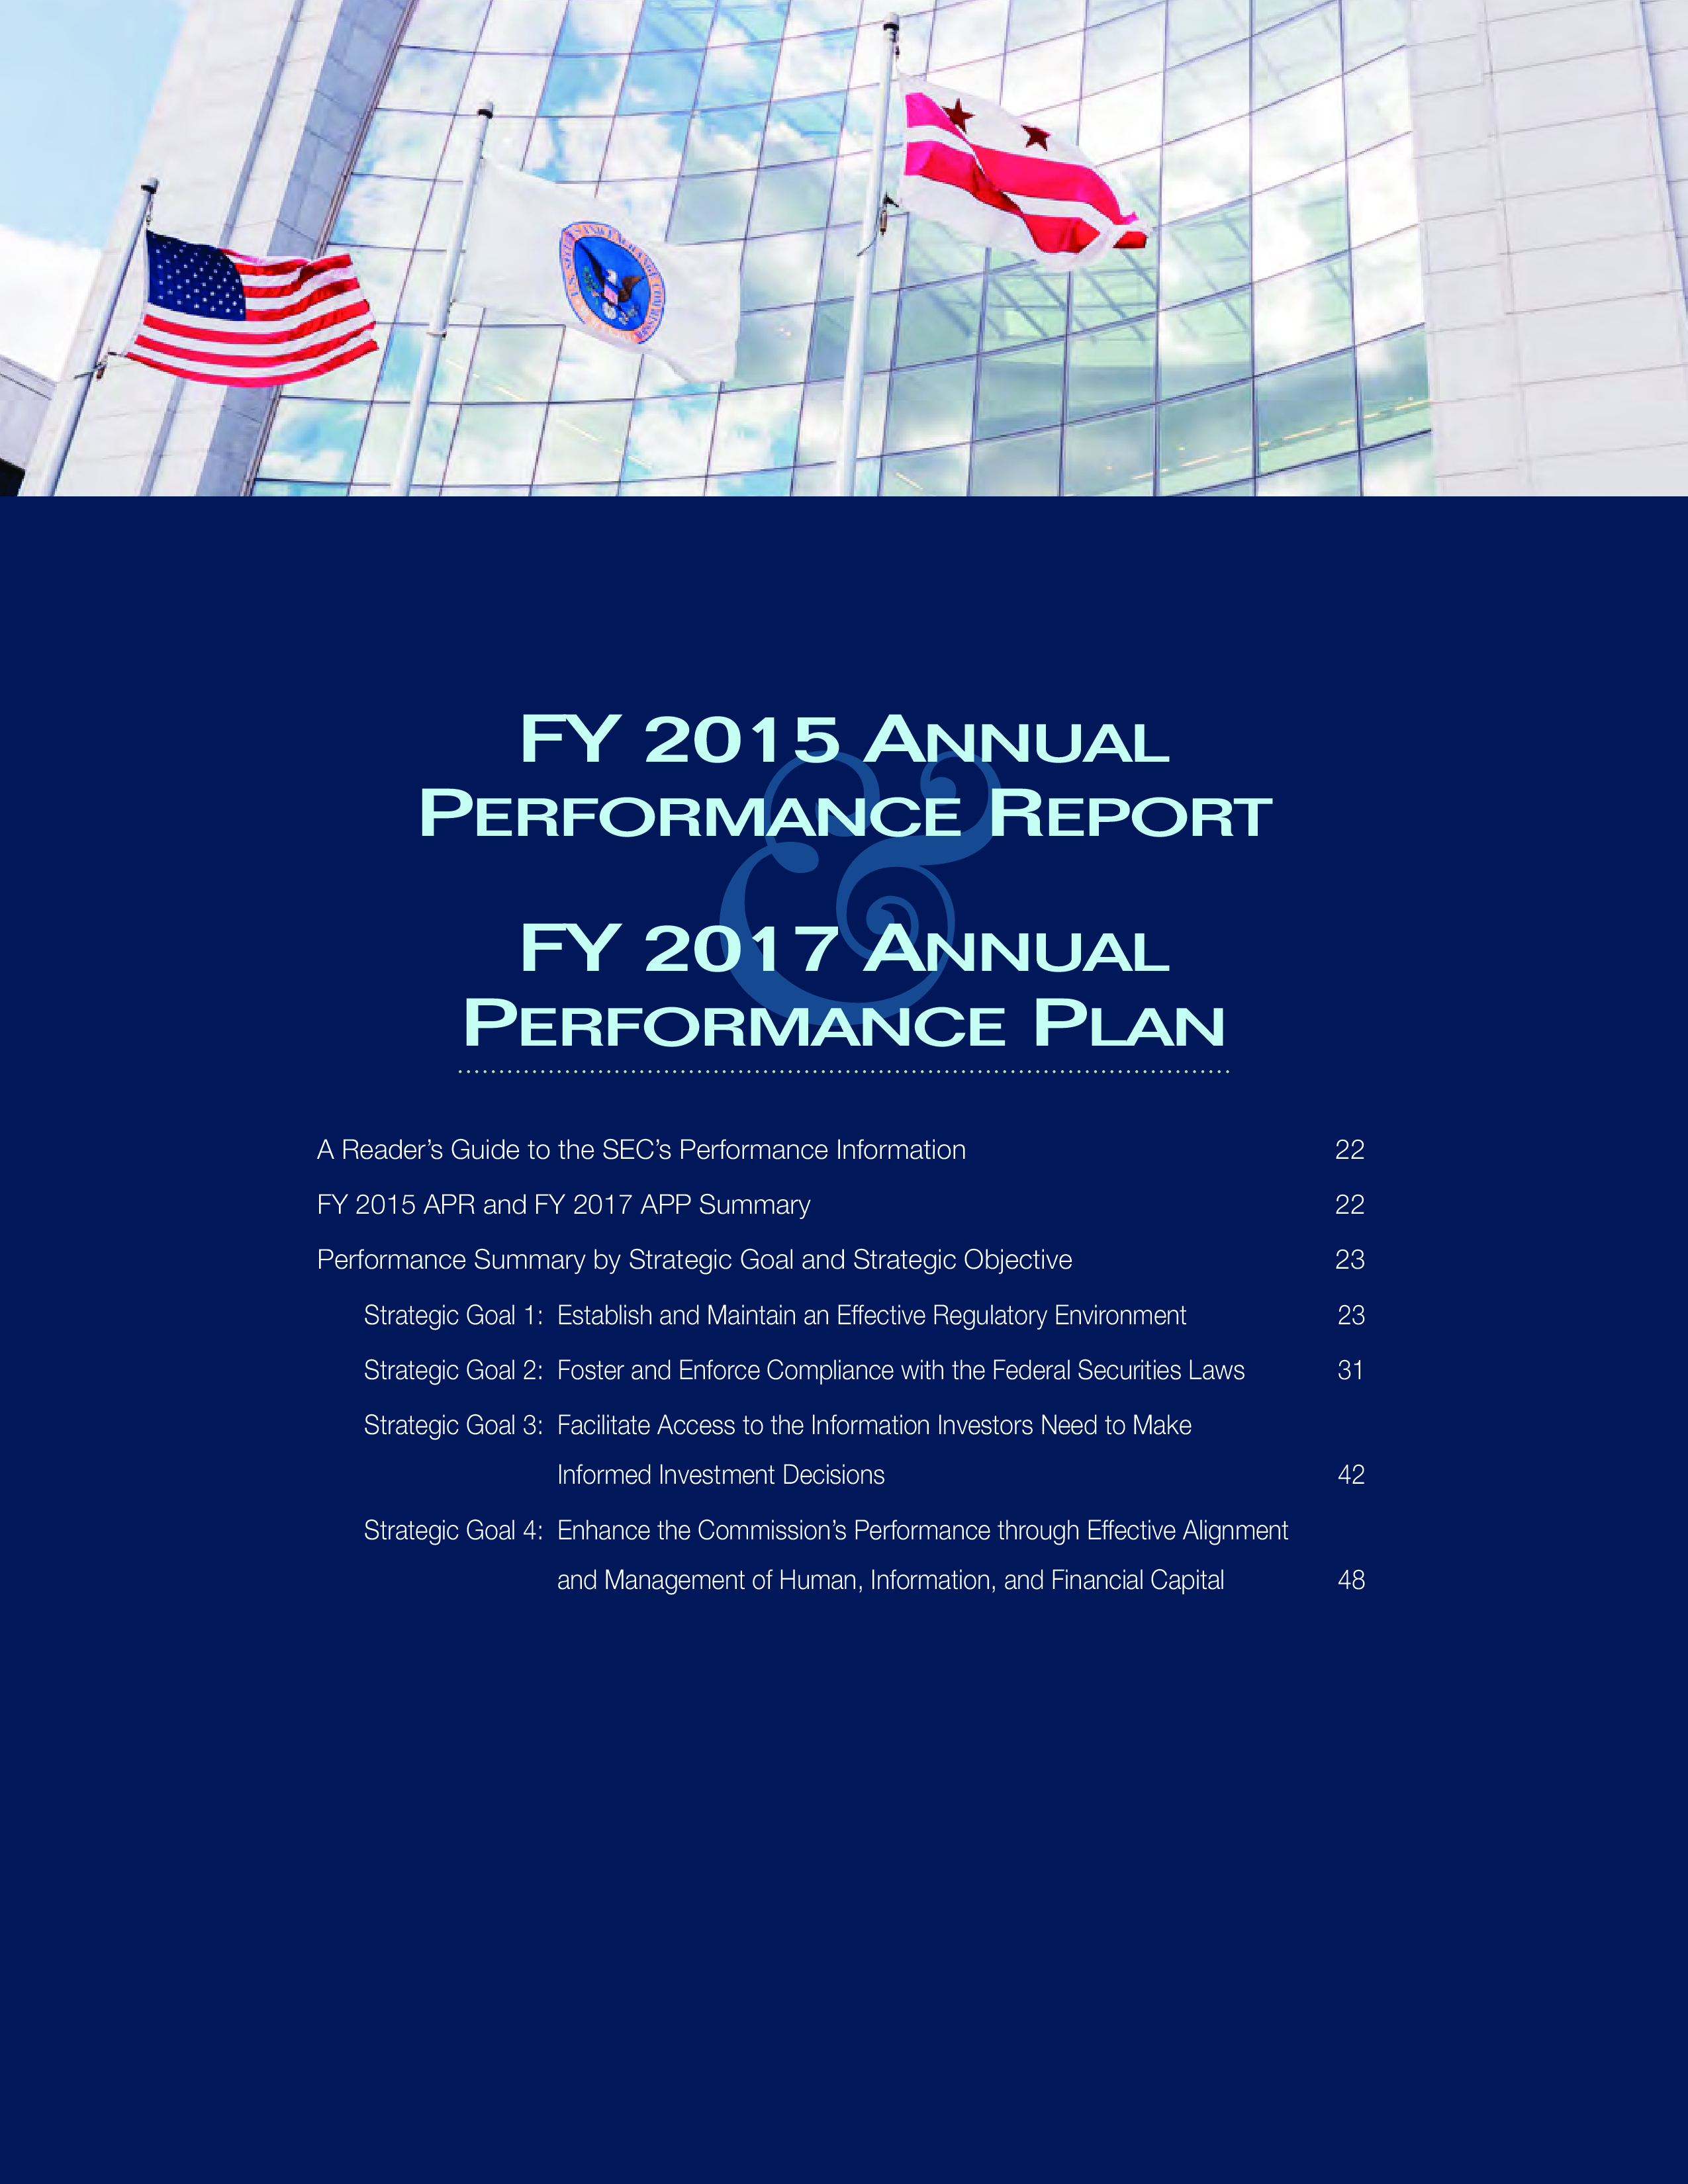 Annual Performance Report main image